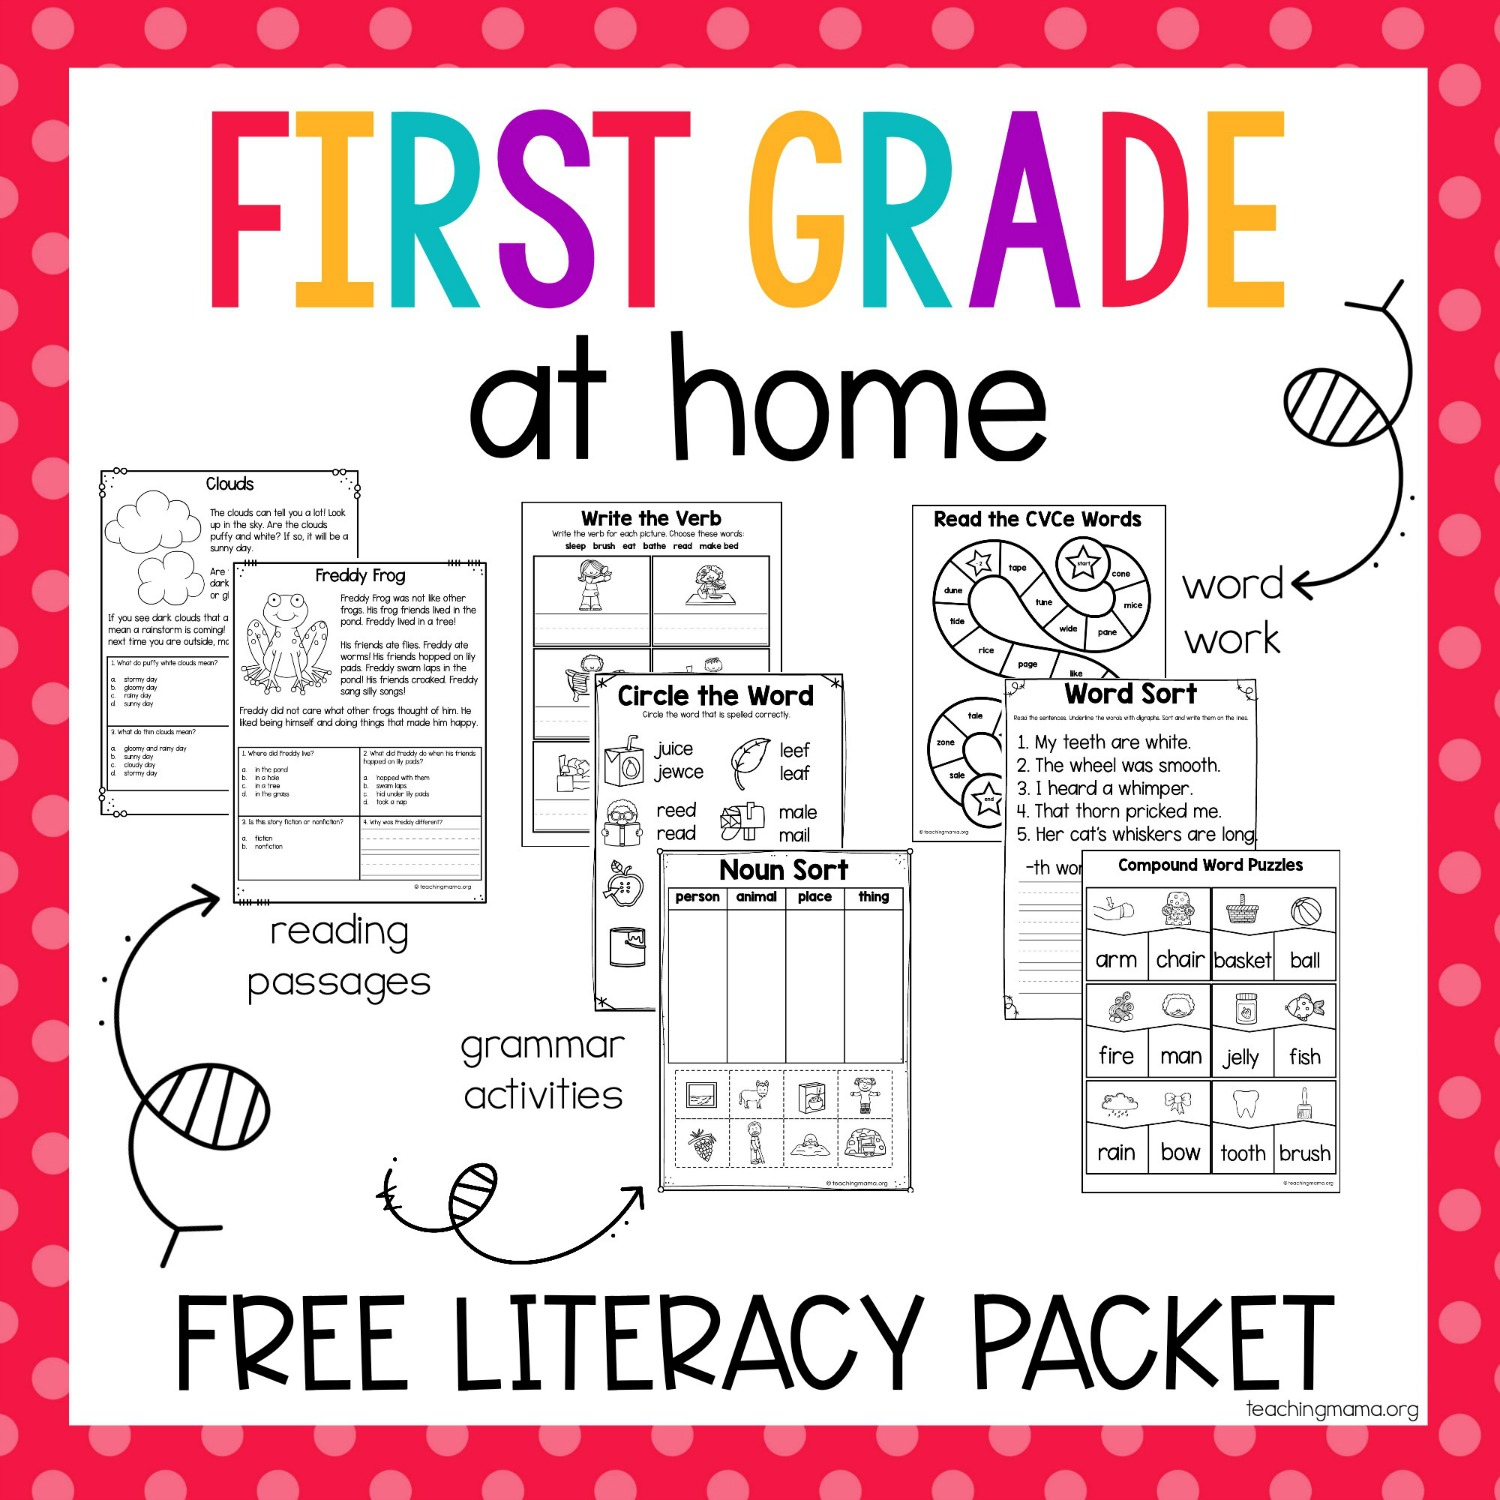 hight resolution of First Grade At Home Literacy Packet - Teaching Mama